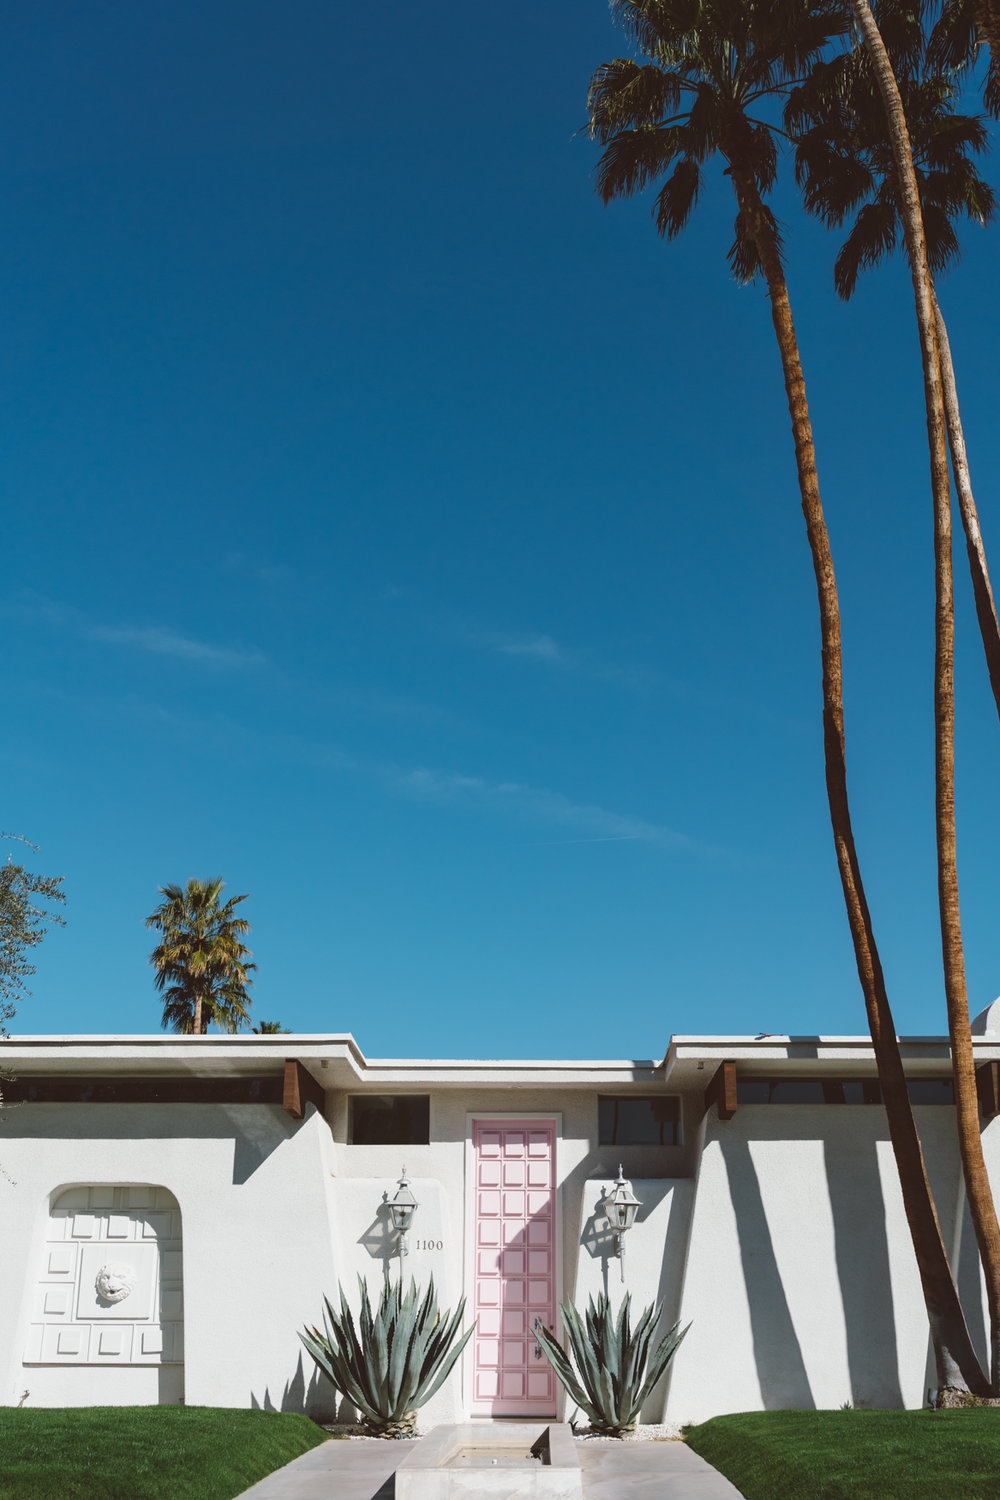 Pink door house in Palm Springs, California